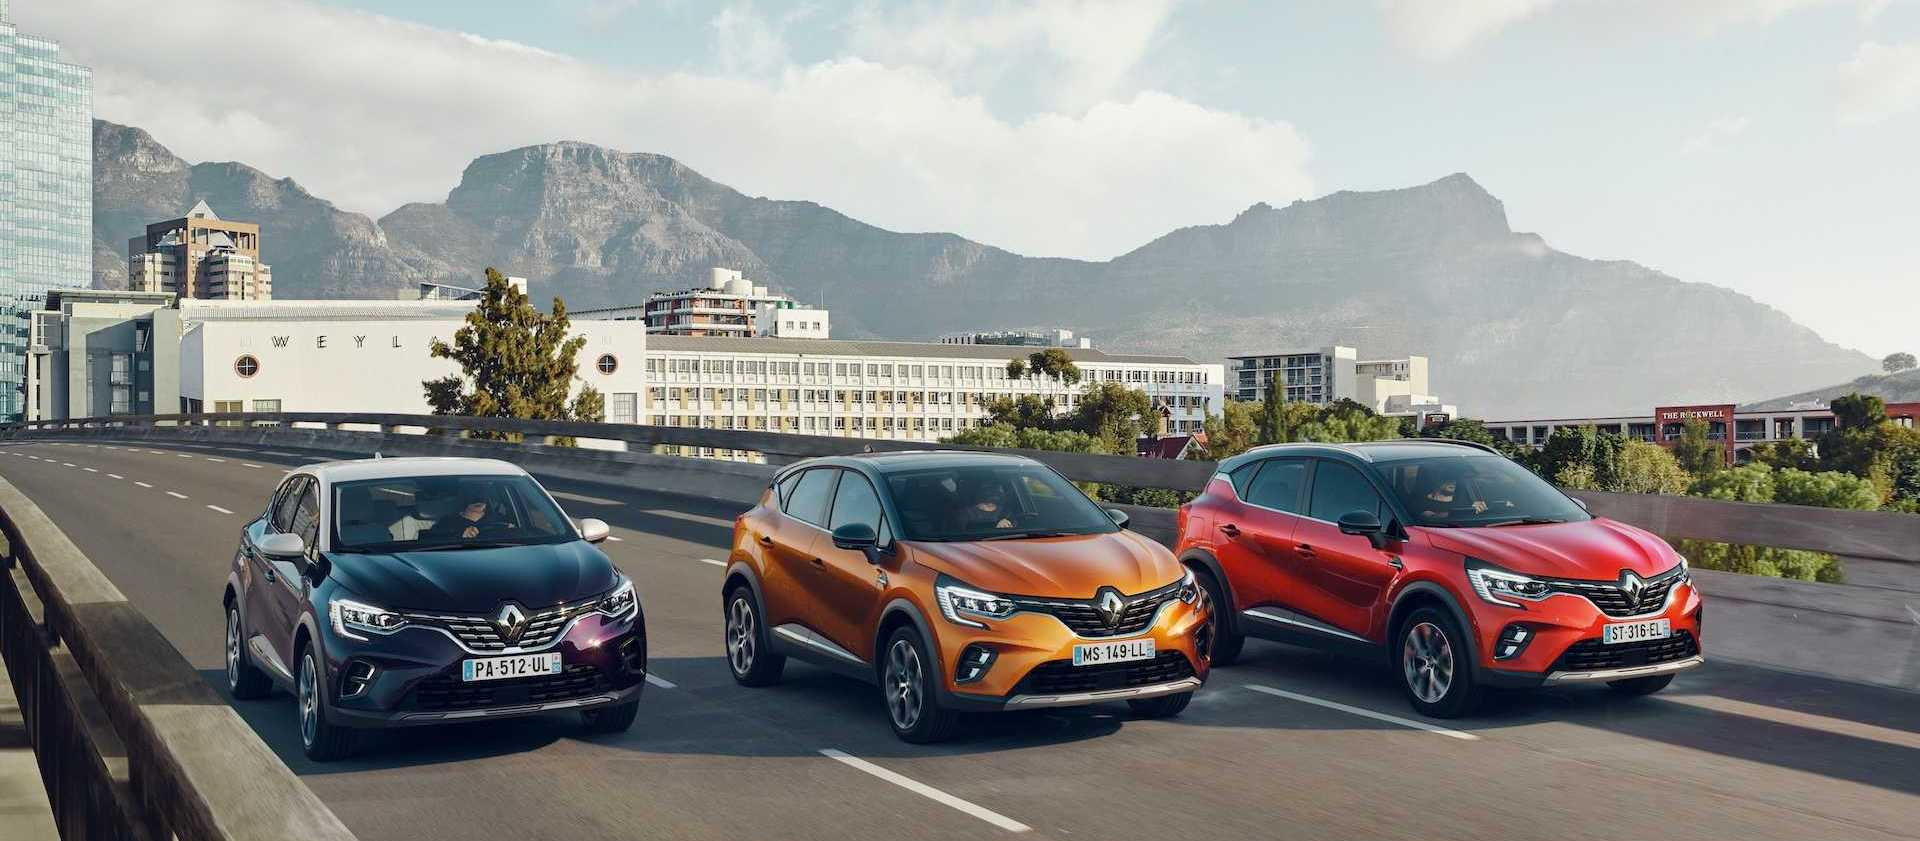 2020 Renault Captur Breaks Cover With Familiar Look, New Tech